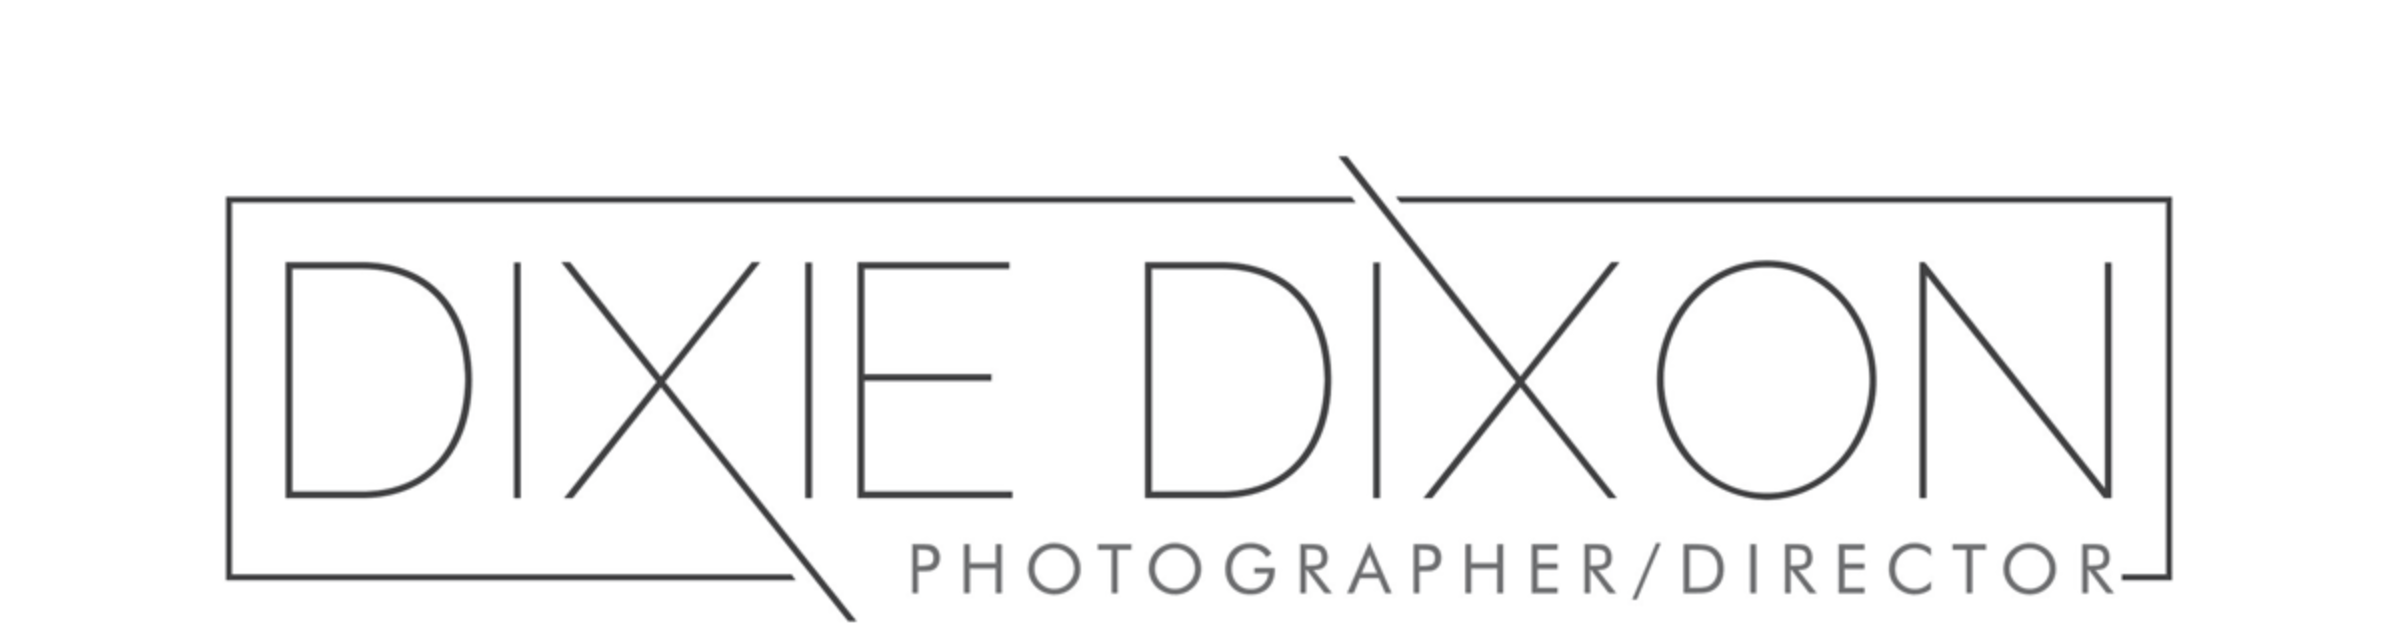 DIXIE DIXON Photographer + Director